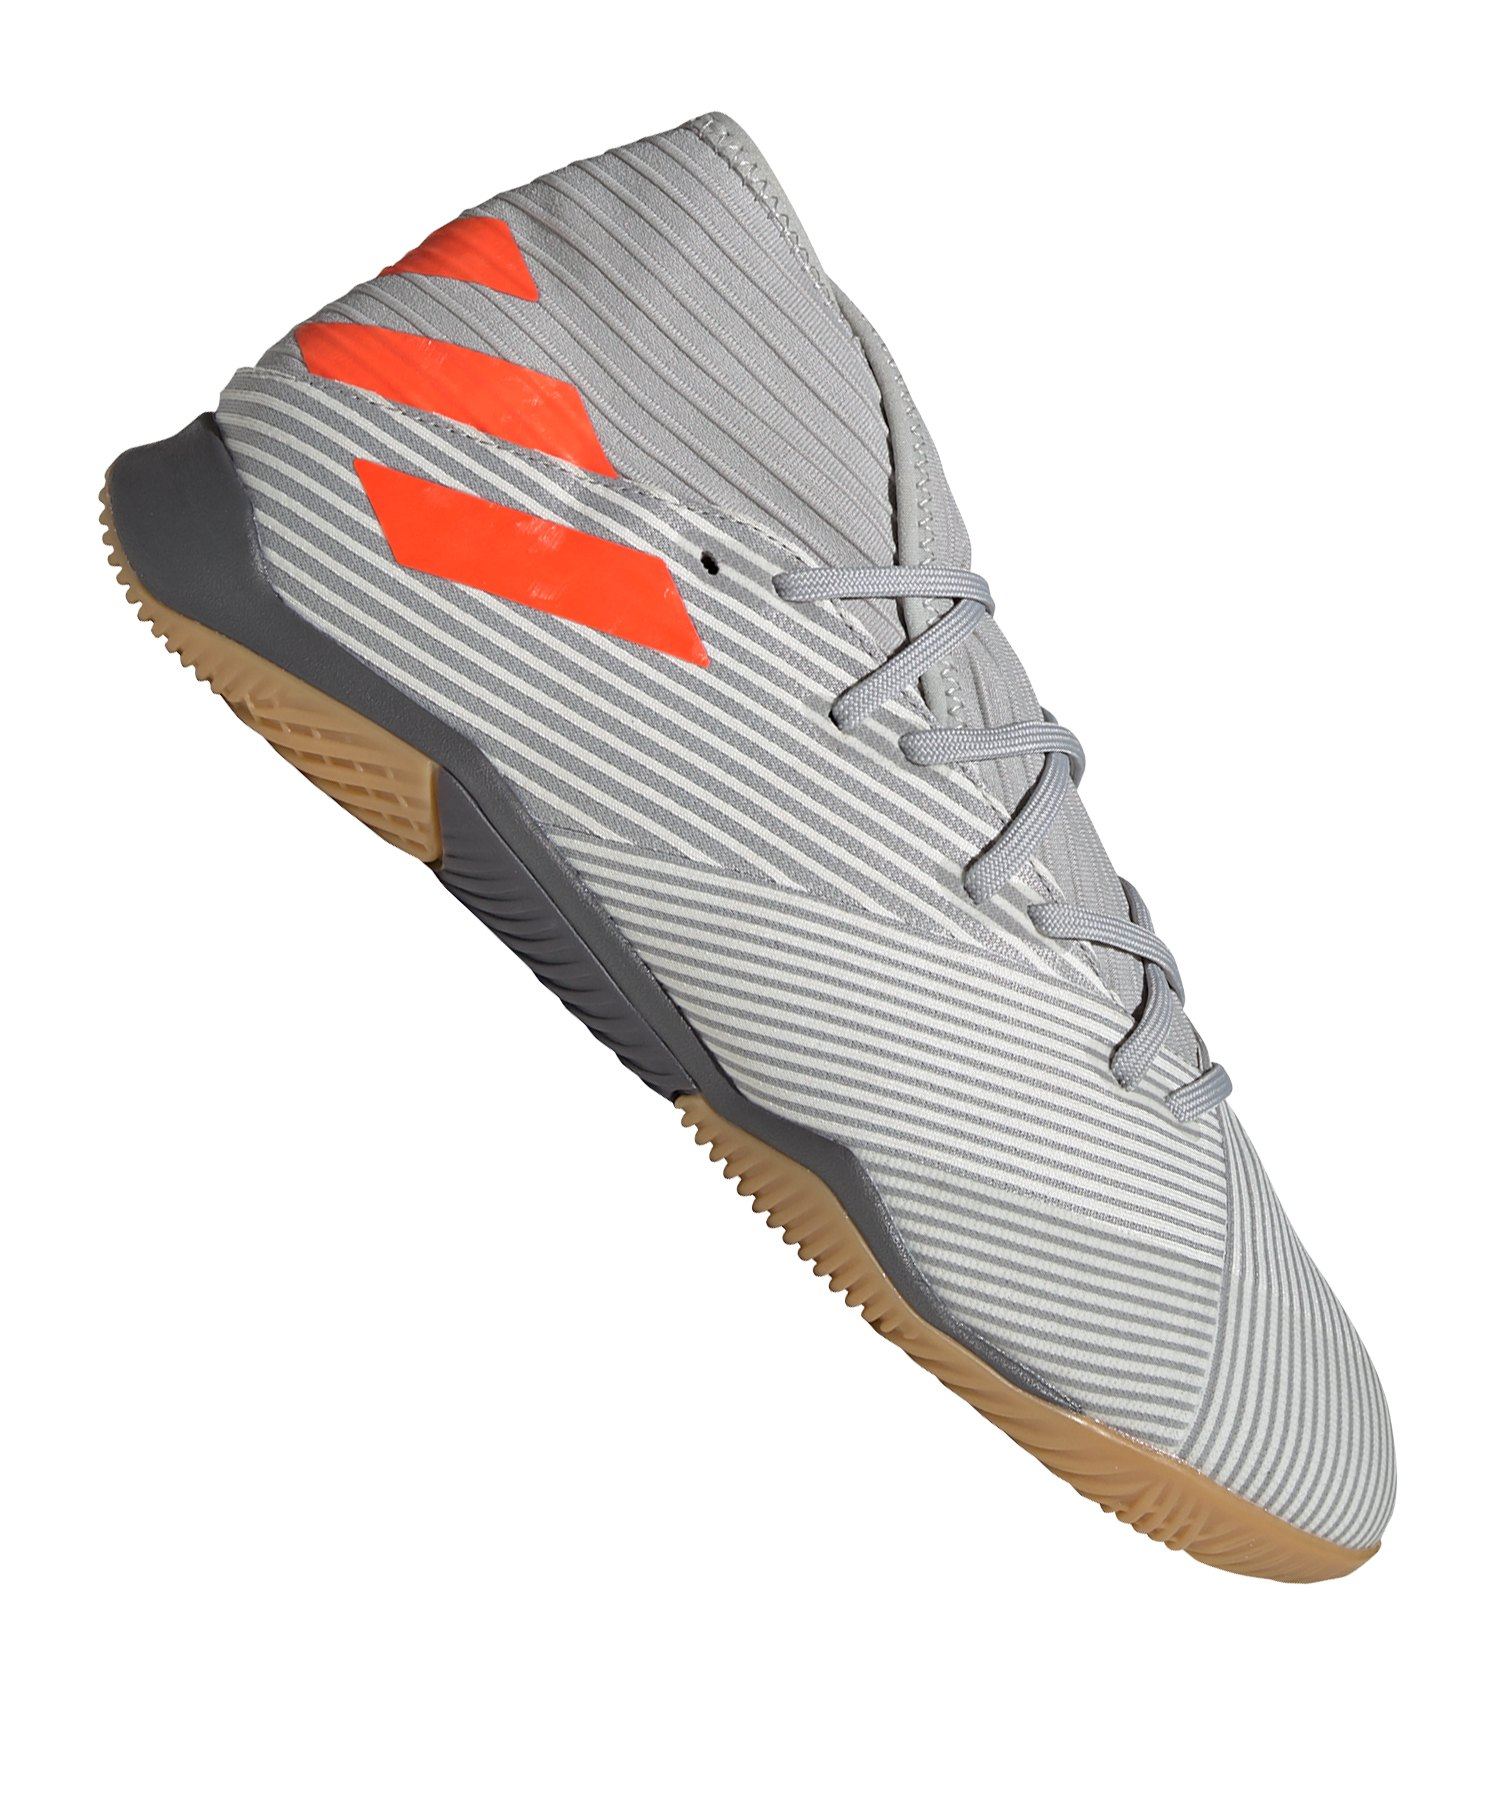 adidas NEMEZIZ 19.3 IN Halle Grau Orange - grau